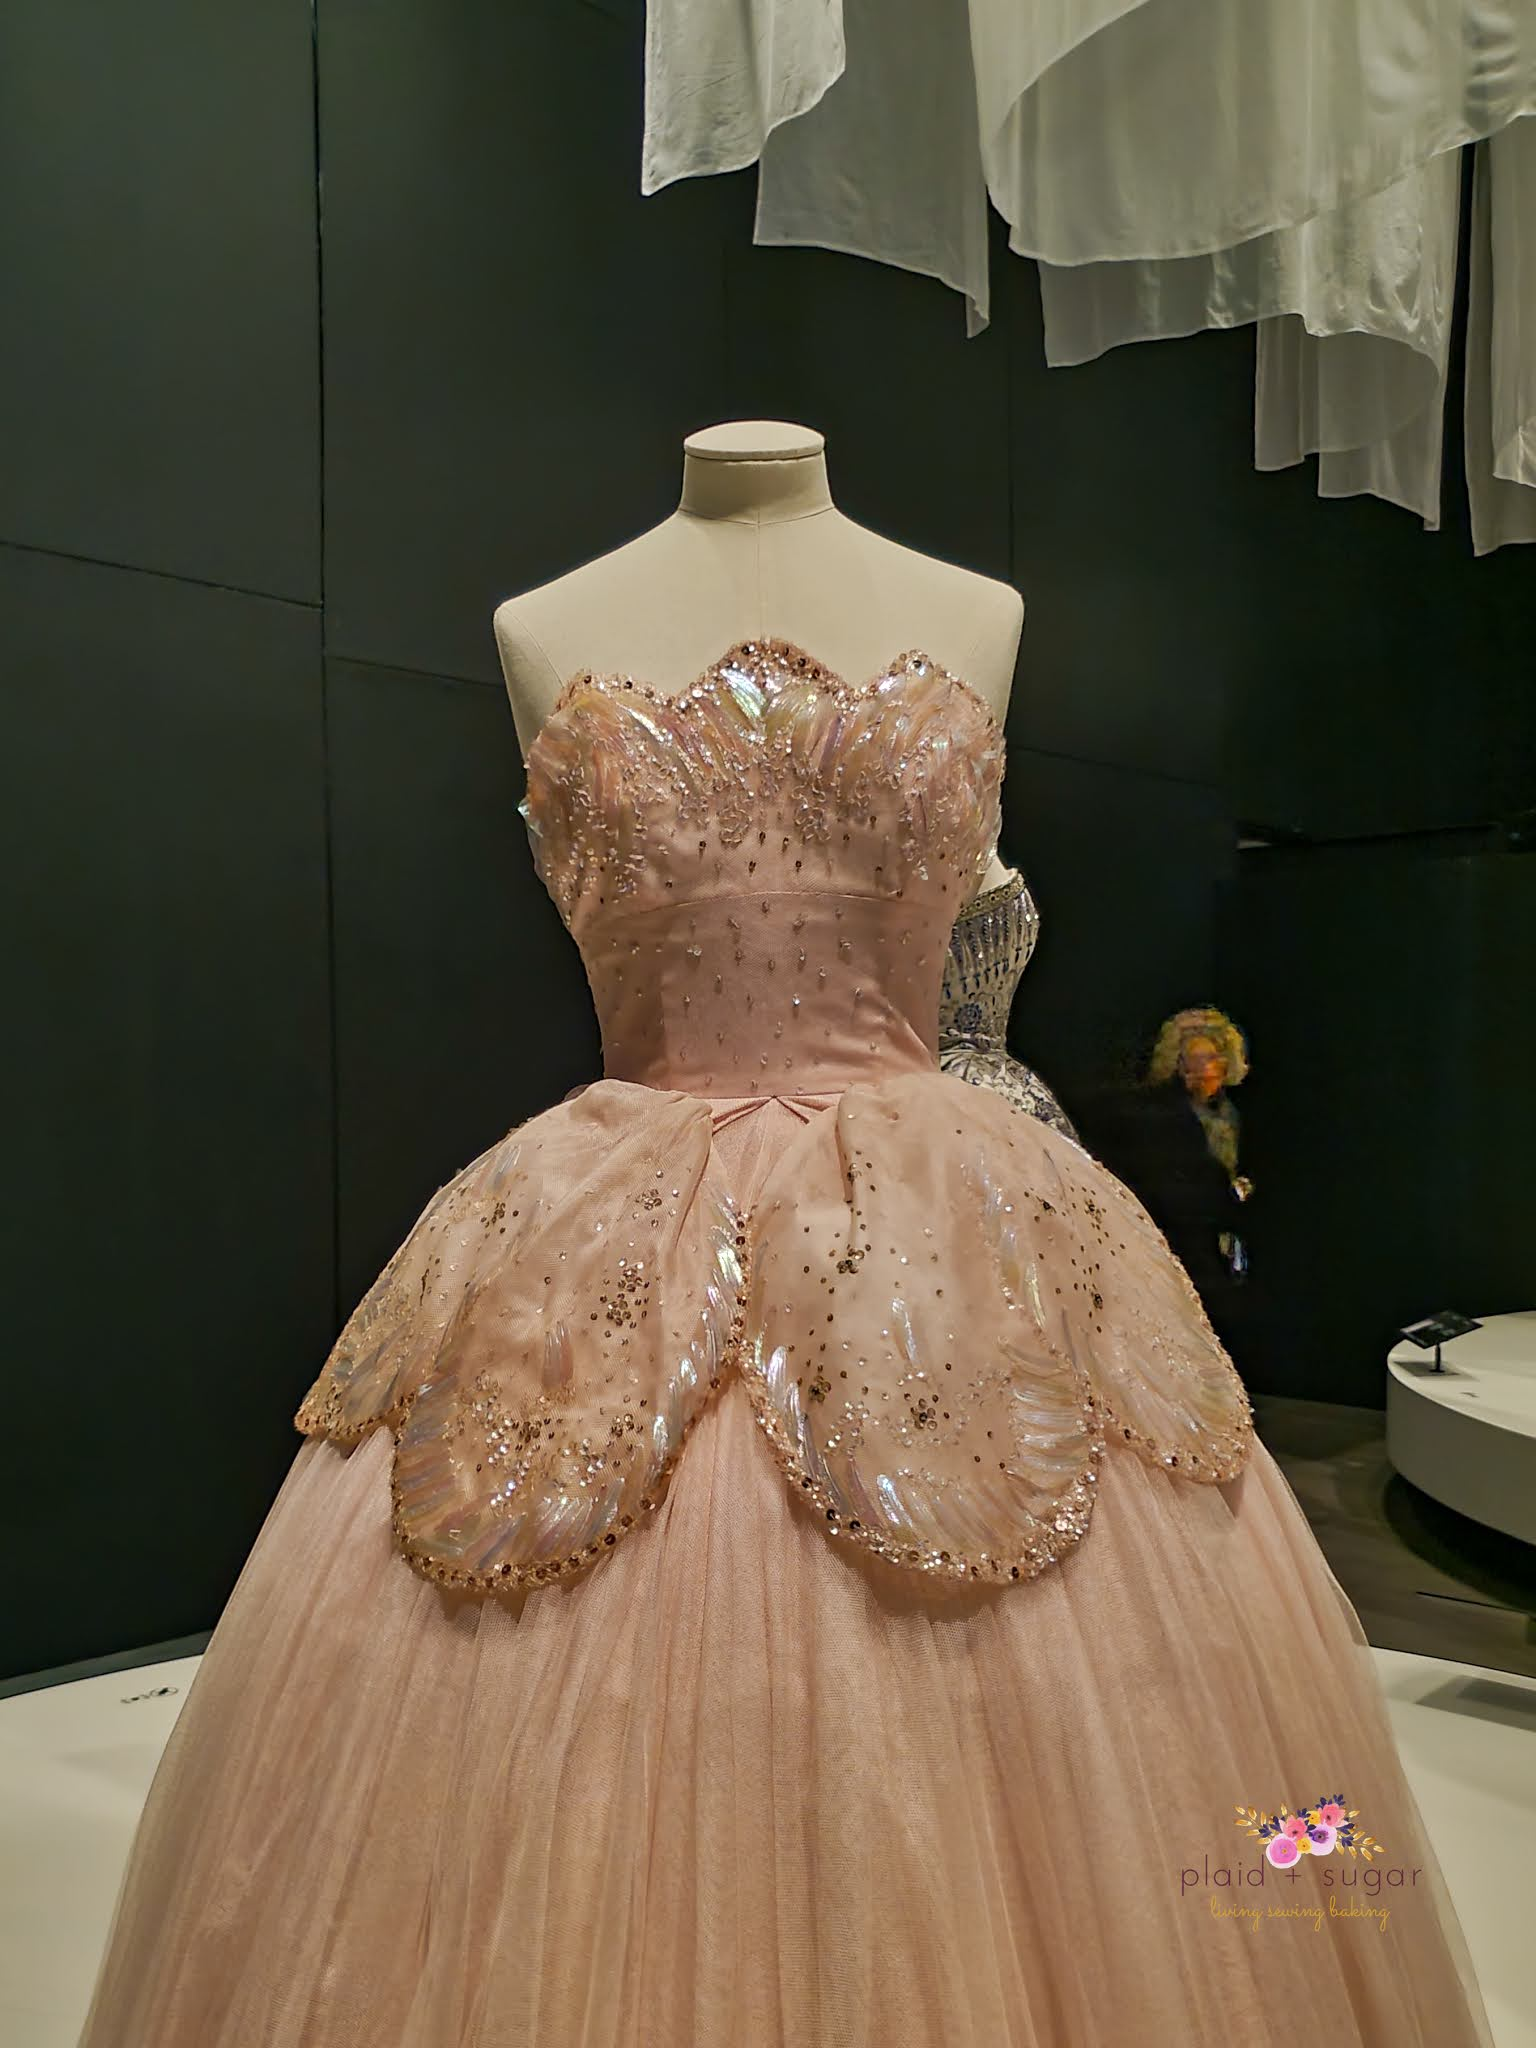 The Dior Exhibit at The McCord Museum in Montreal